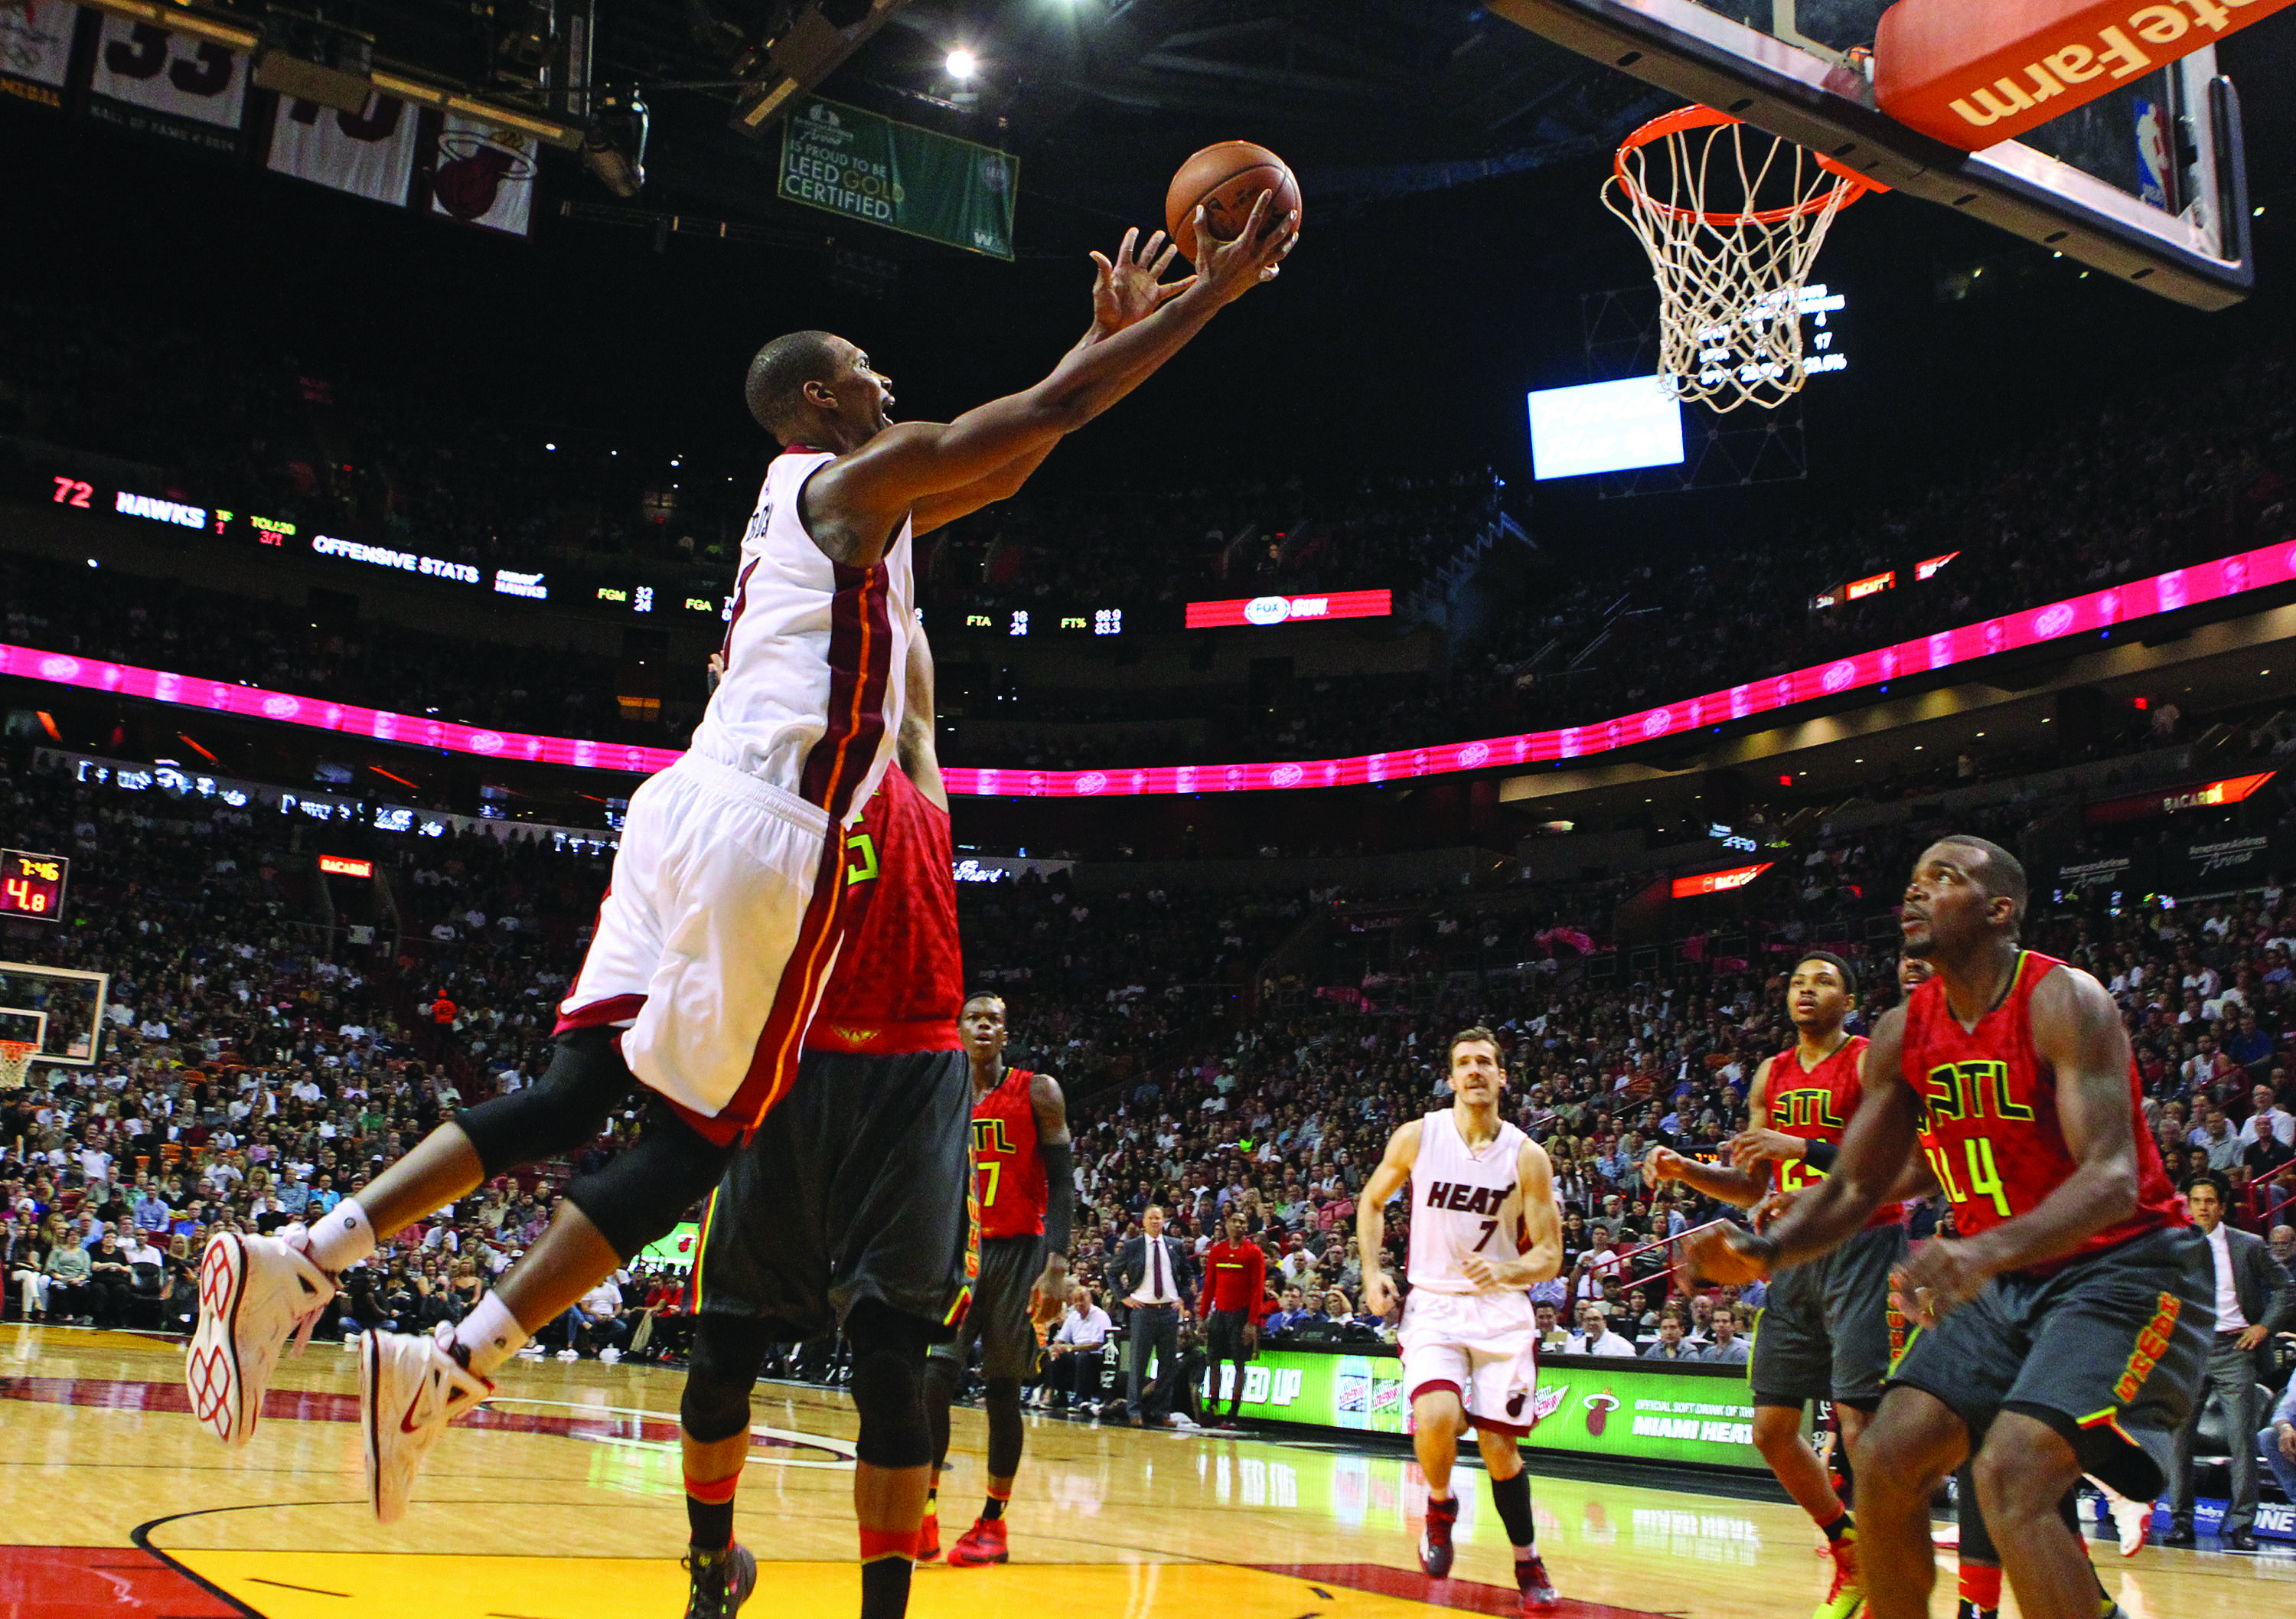 Chris Bosh hopeful of return after health scare